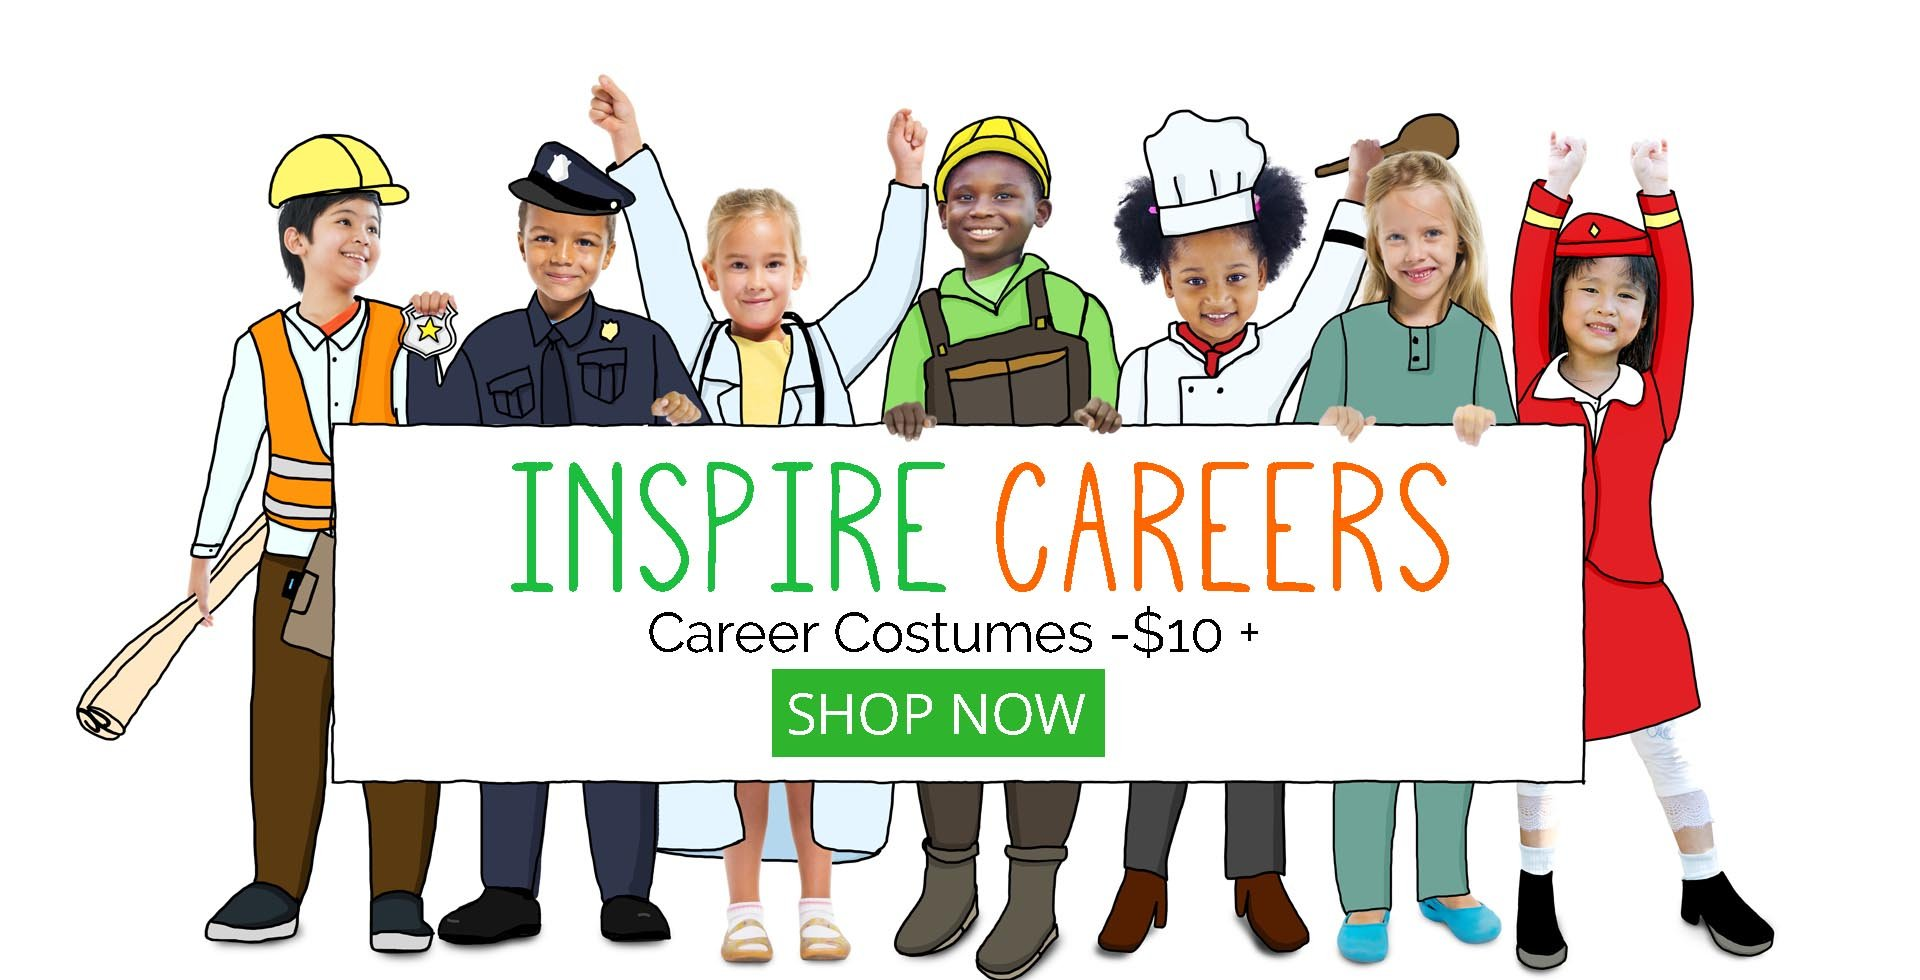 Dress Up Career Job Costumes at Costume Zoo